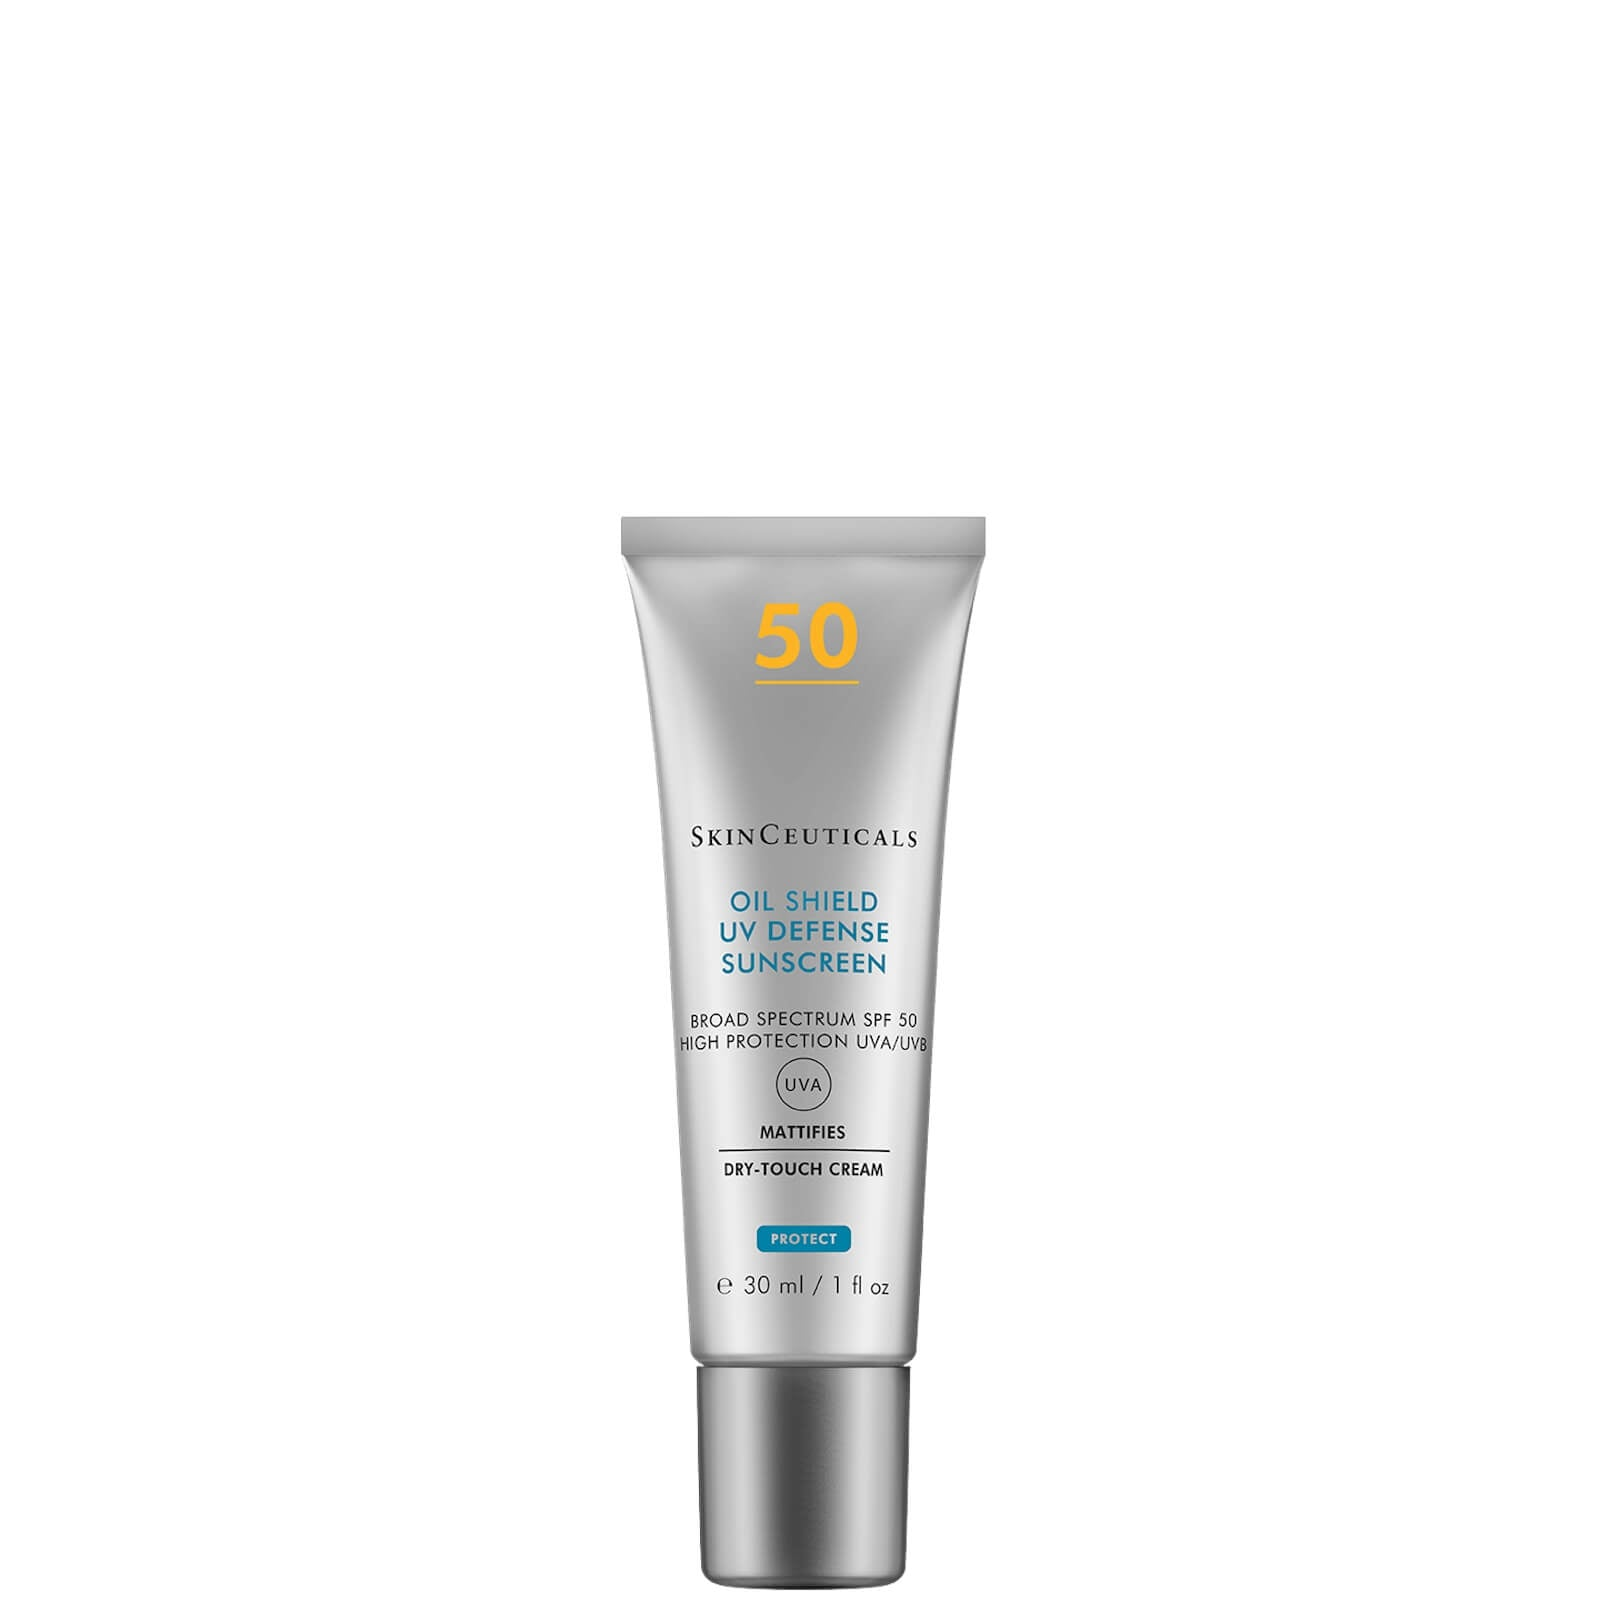 SkinCeuticals Oil Shield UV Defense Sunscreen SPF50 30ml